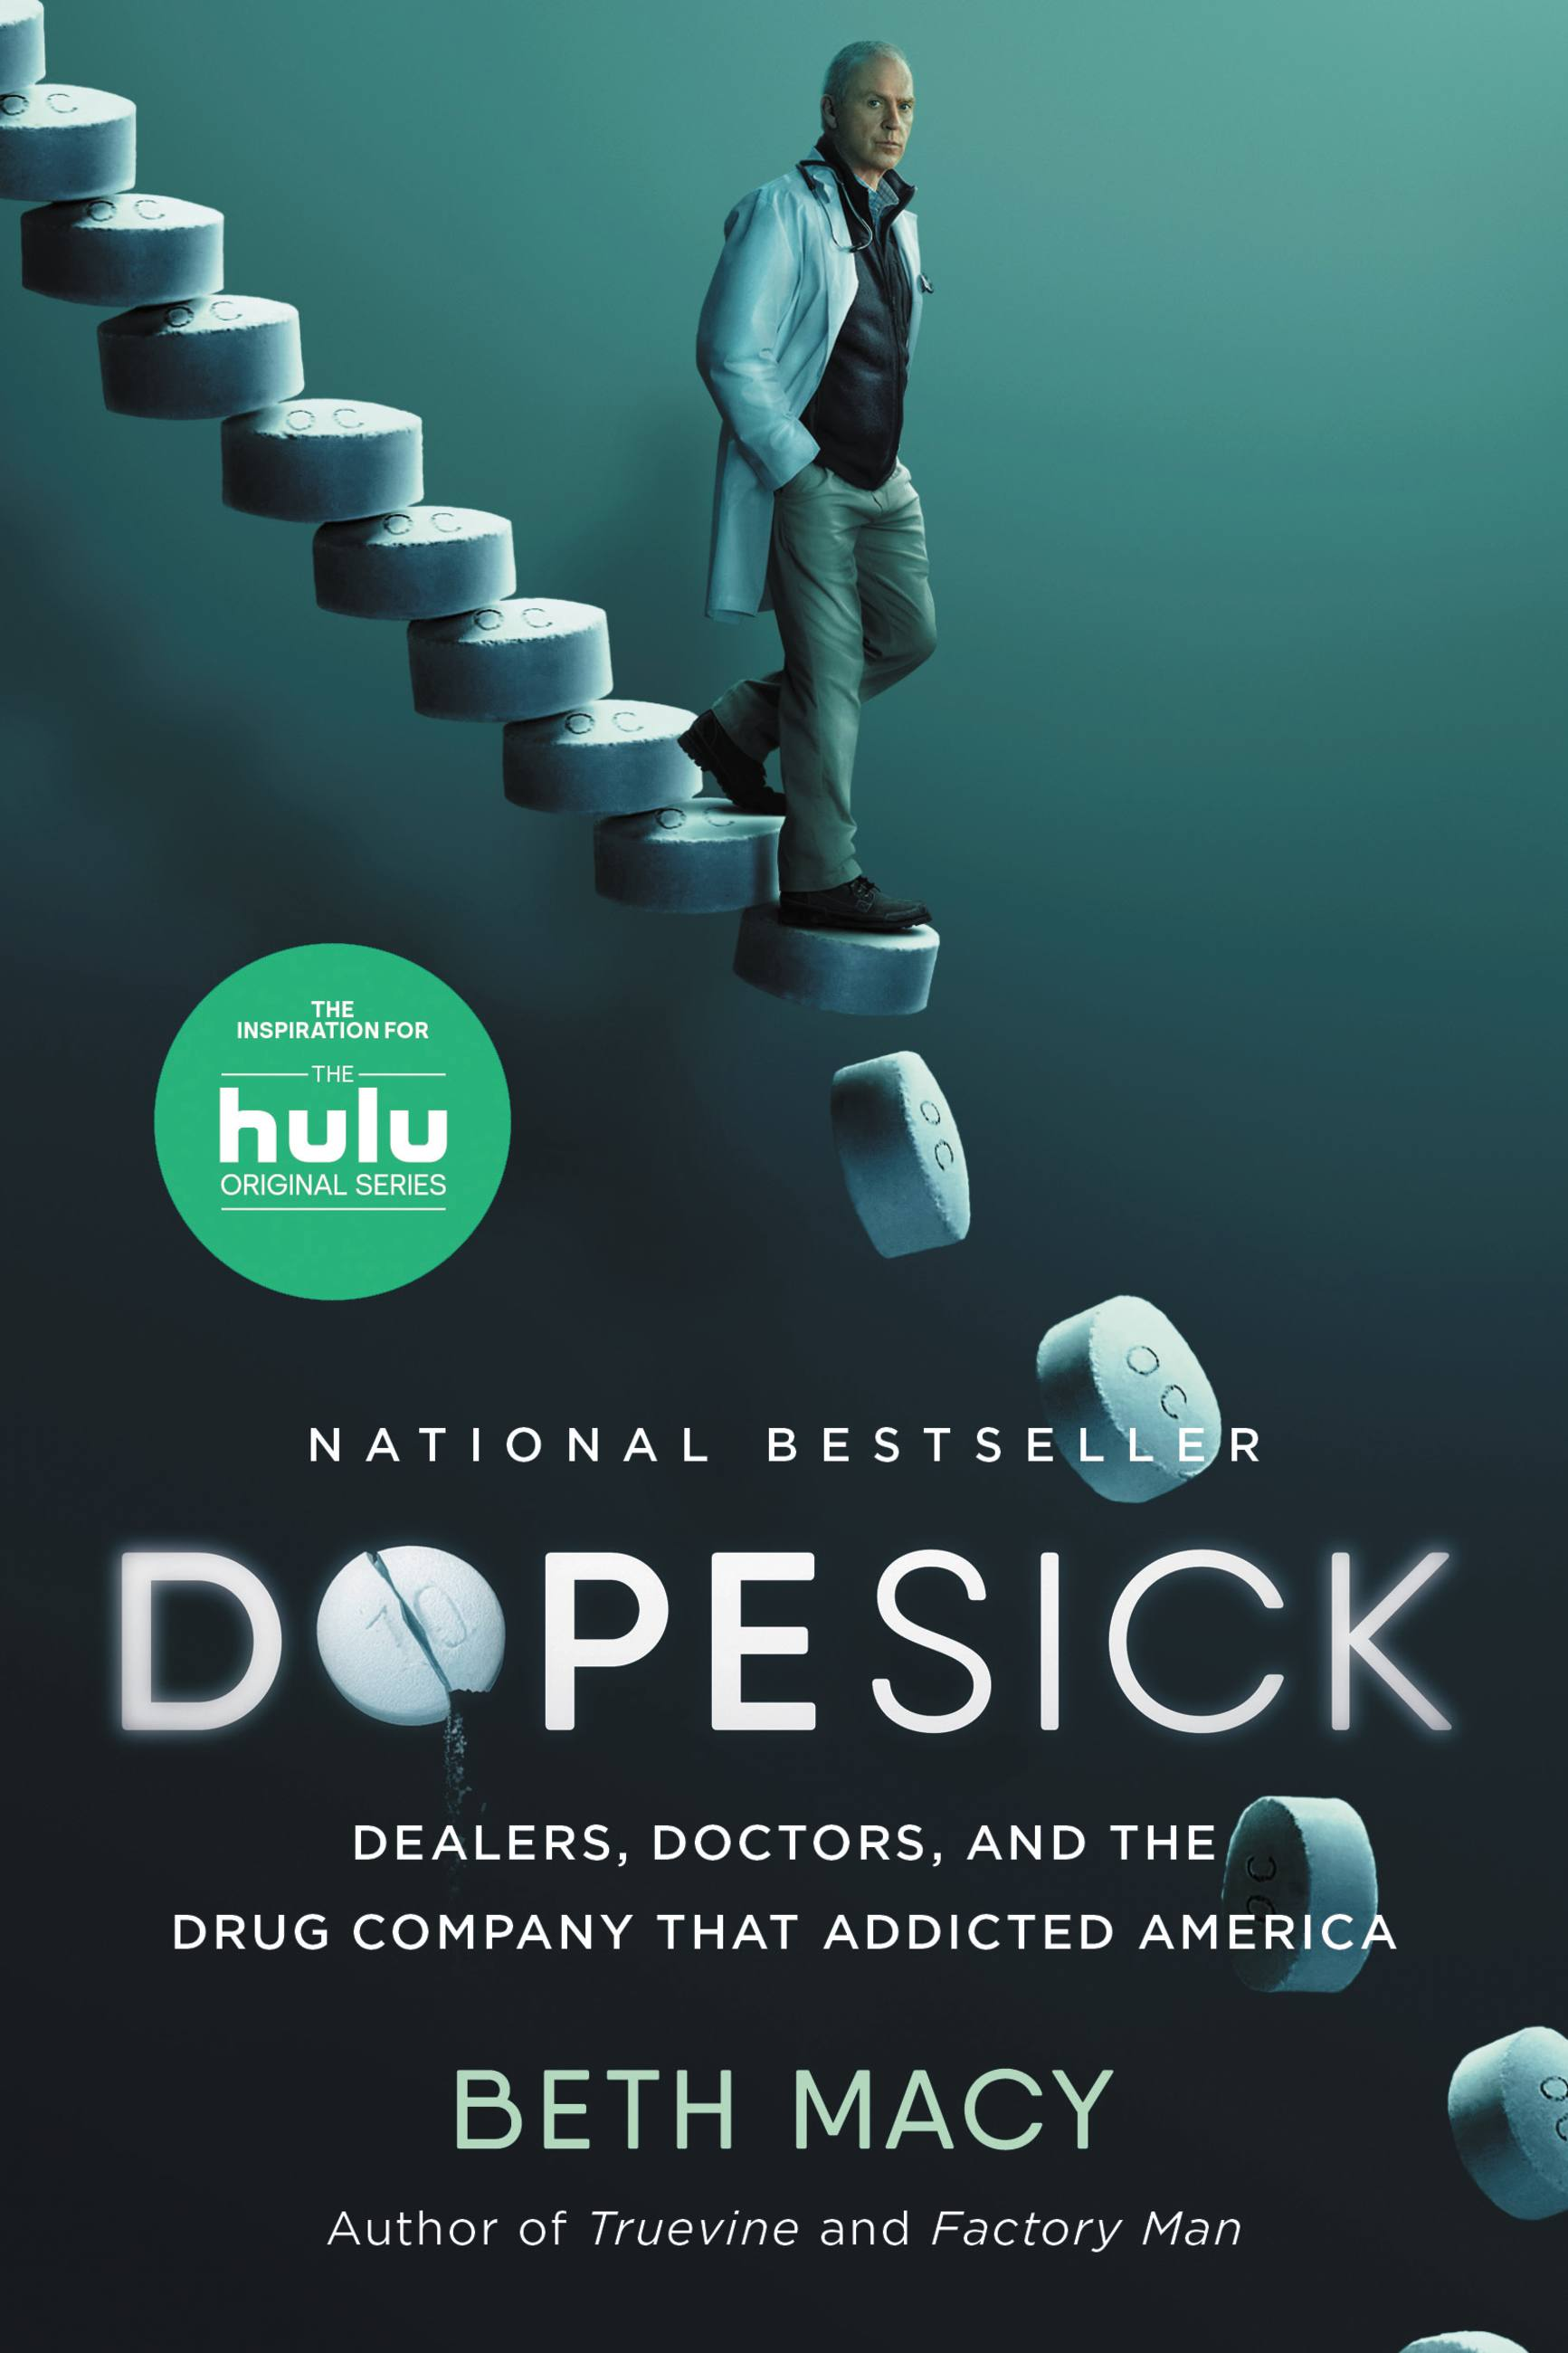 Dopesick Dealers, Doctors, and the Drug Company that Addicted America